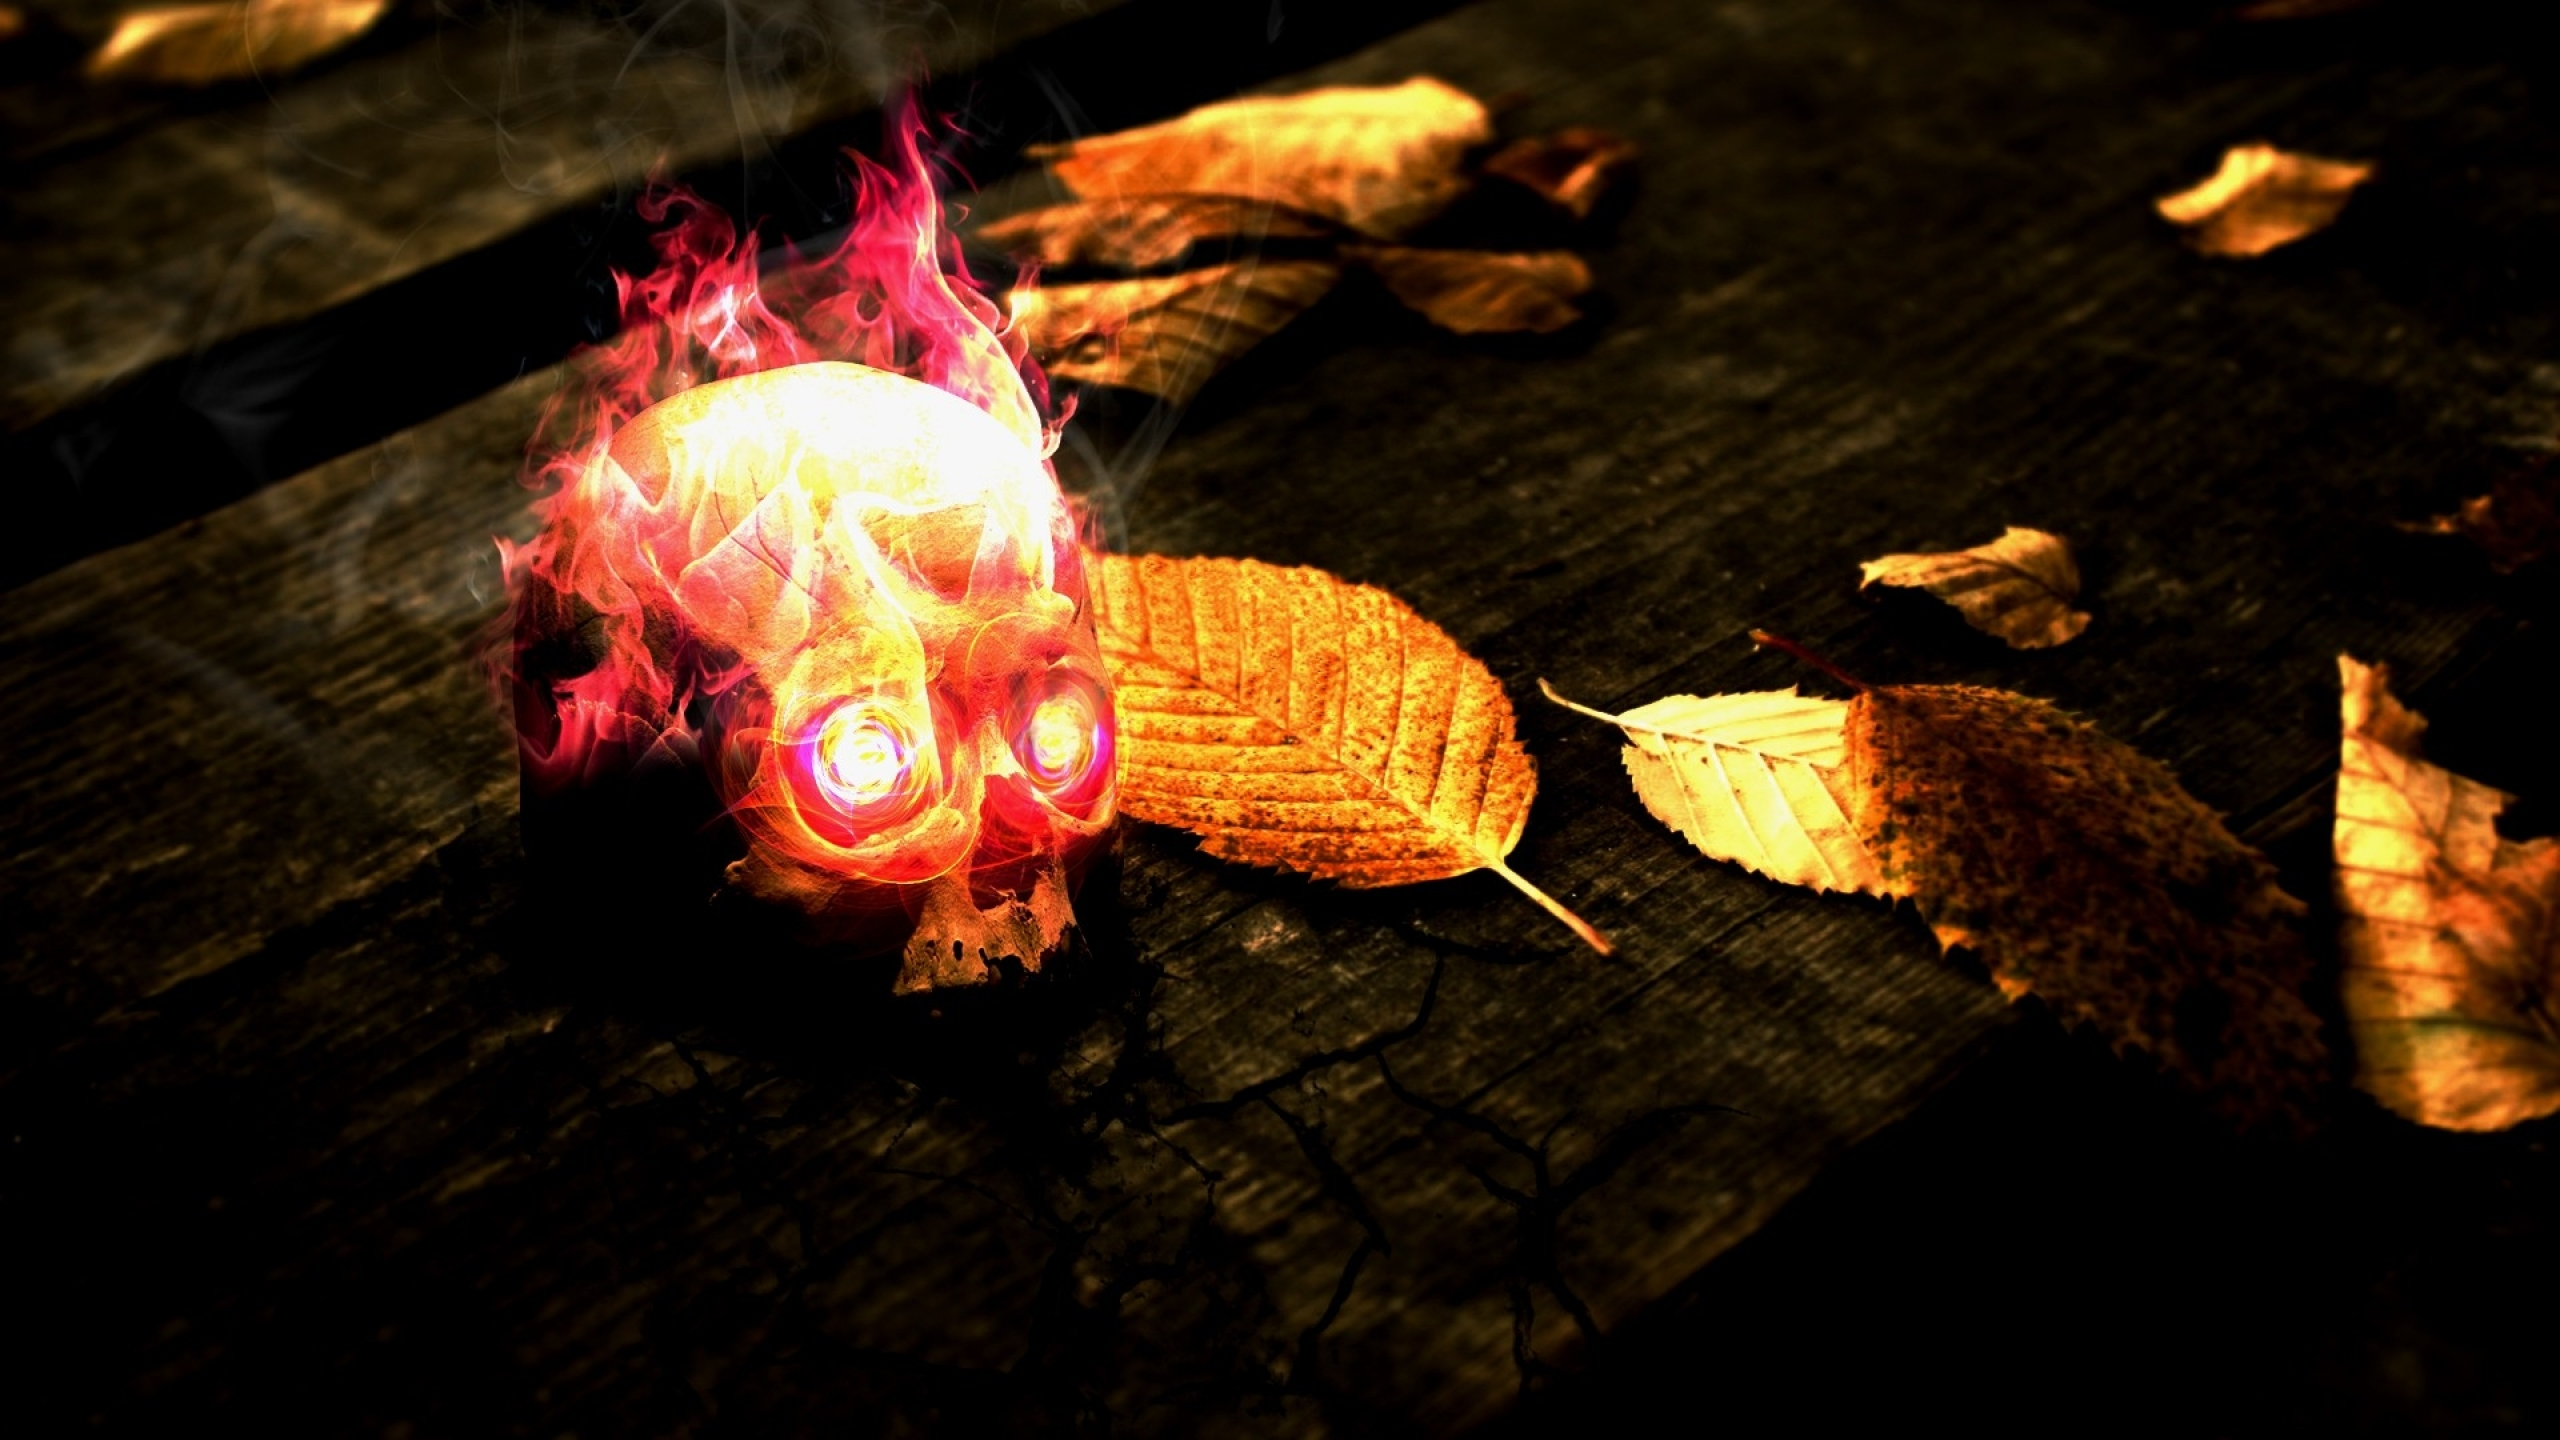 flames skulls red yellow wood fire dead leaves textures glow flaming 2560x1440